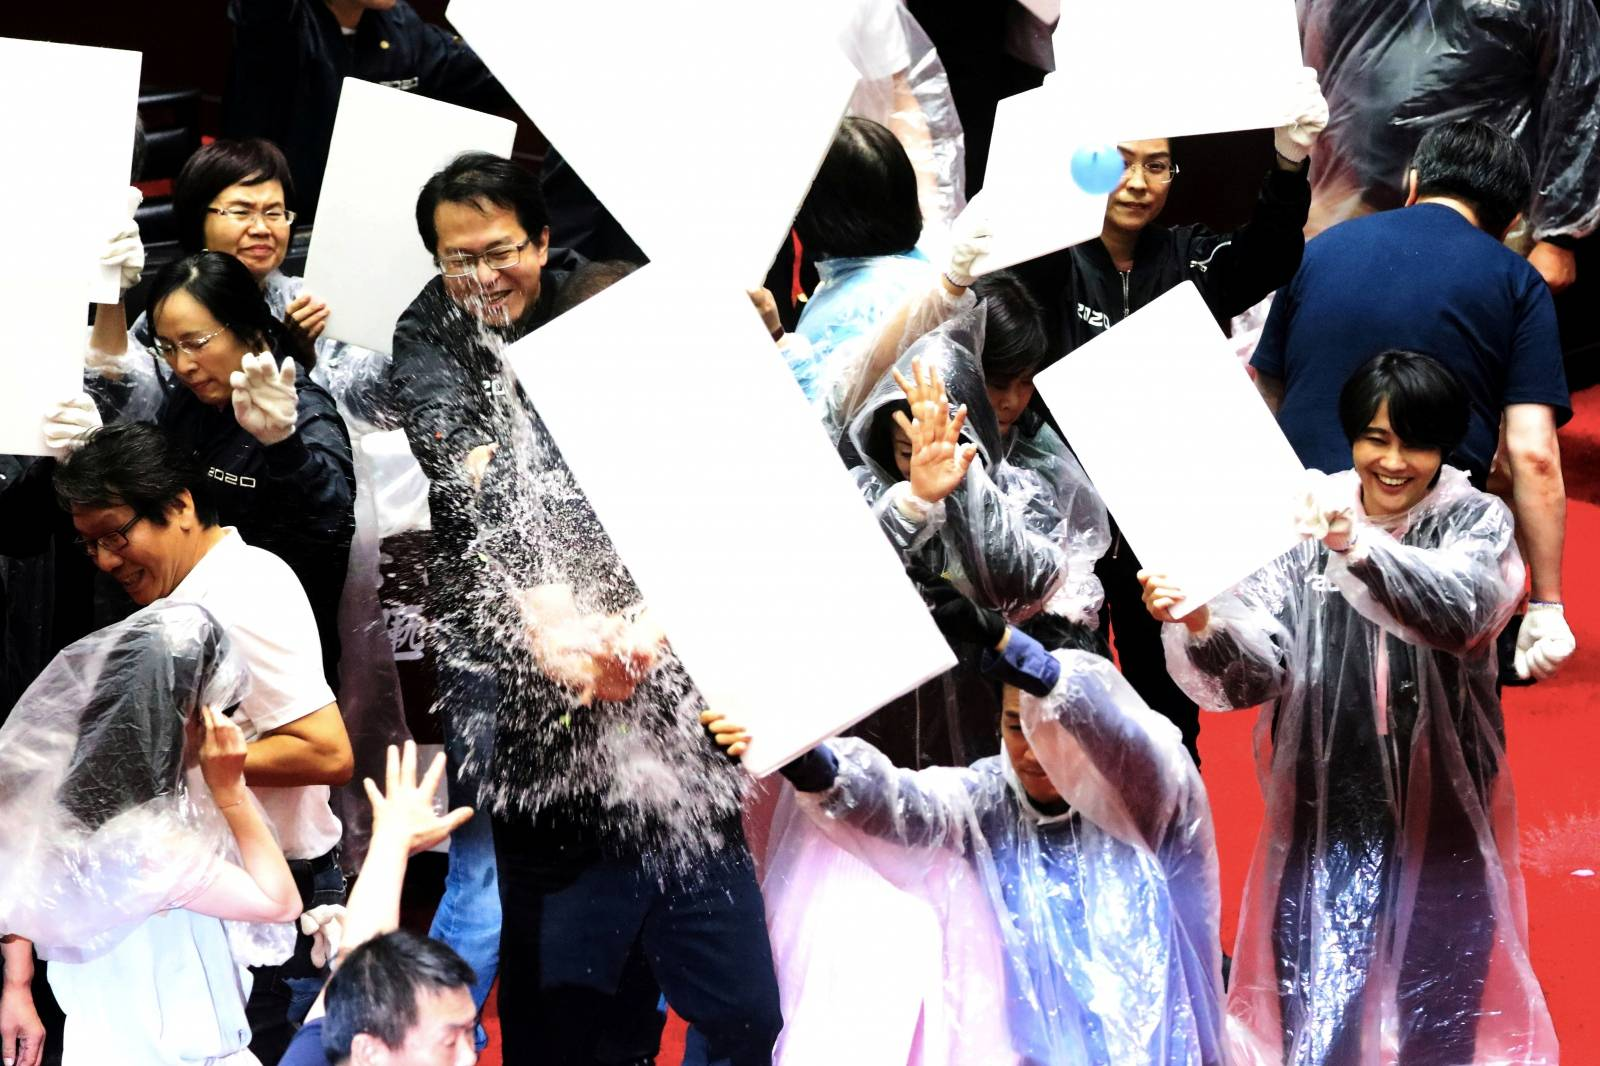 Lawmakers from Taiwan's ruling Democratic Progressive Party (DPP) with lawmakers from the main opposition Kuomintang (KMT) party throw water balloons at each other inside the parliament in Taipei